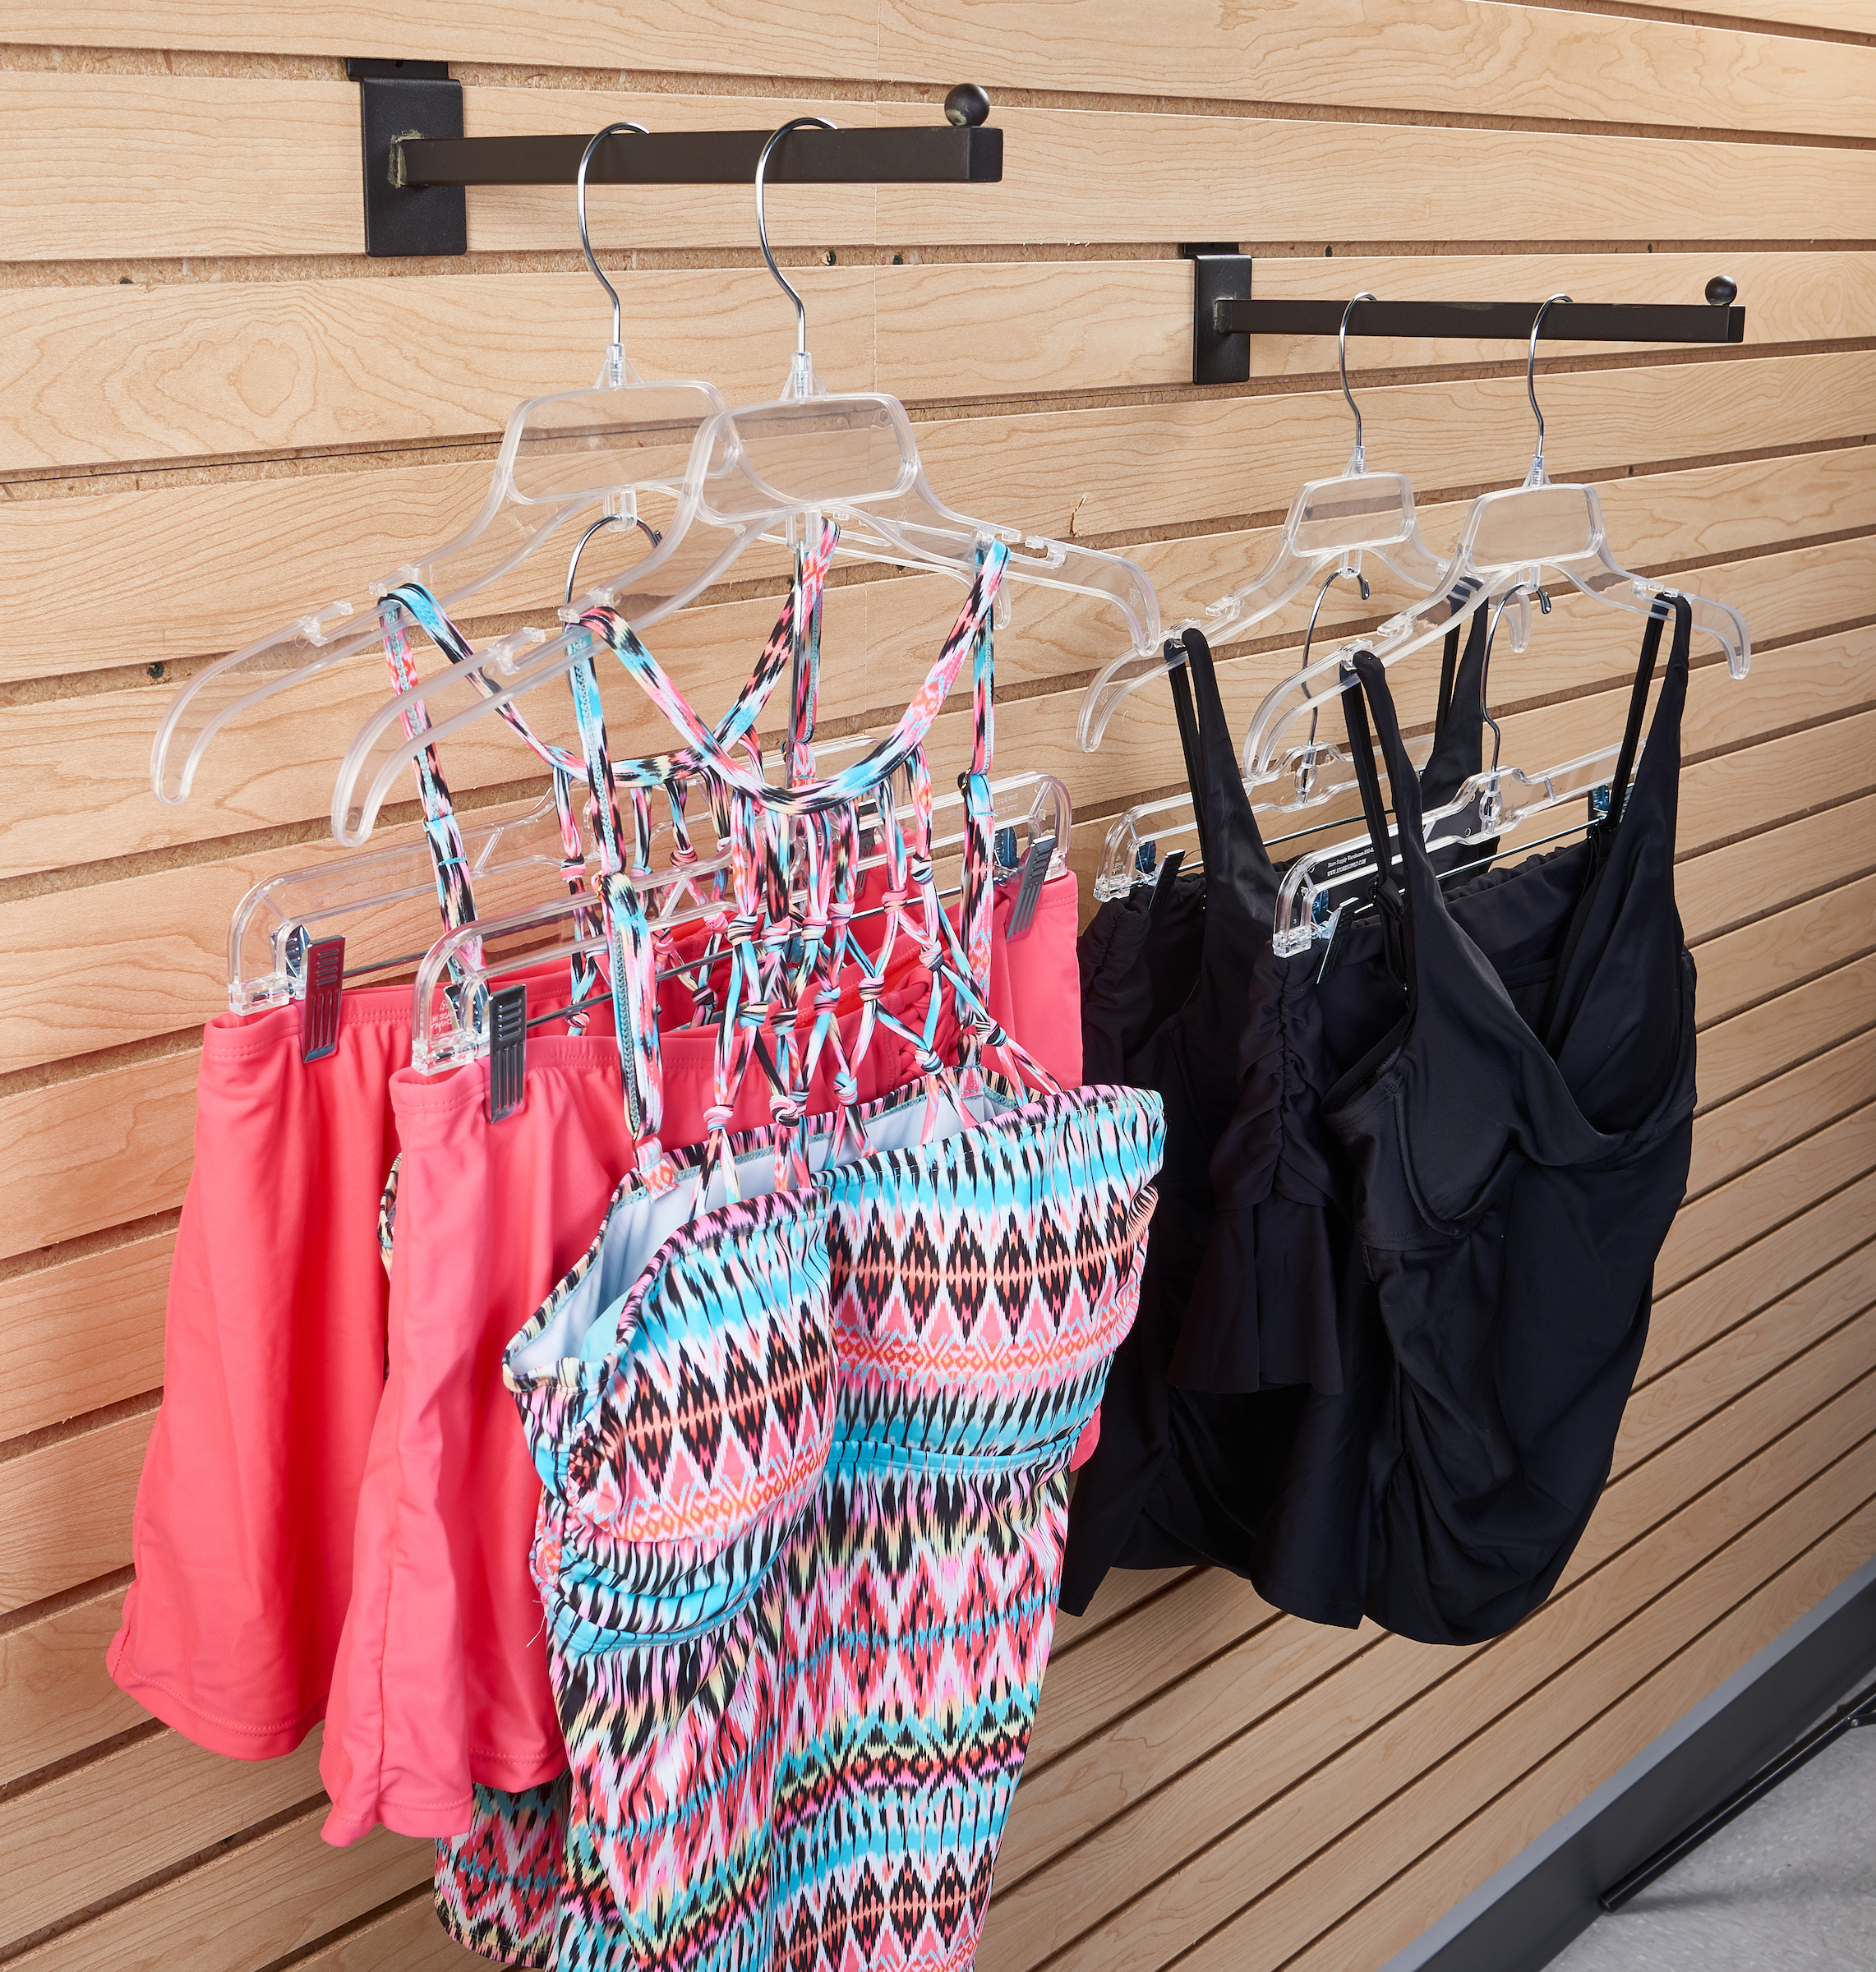 Swimsuit Display Hangers